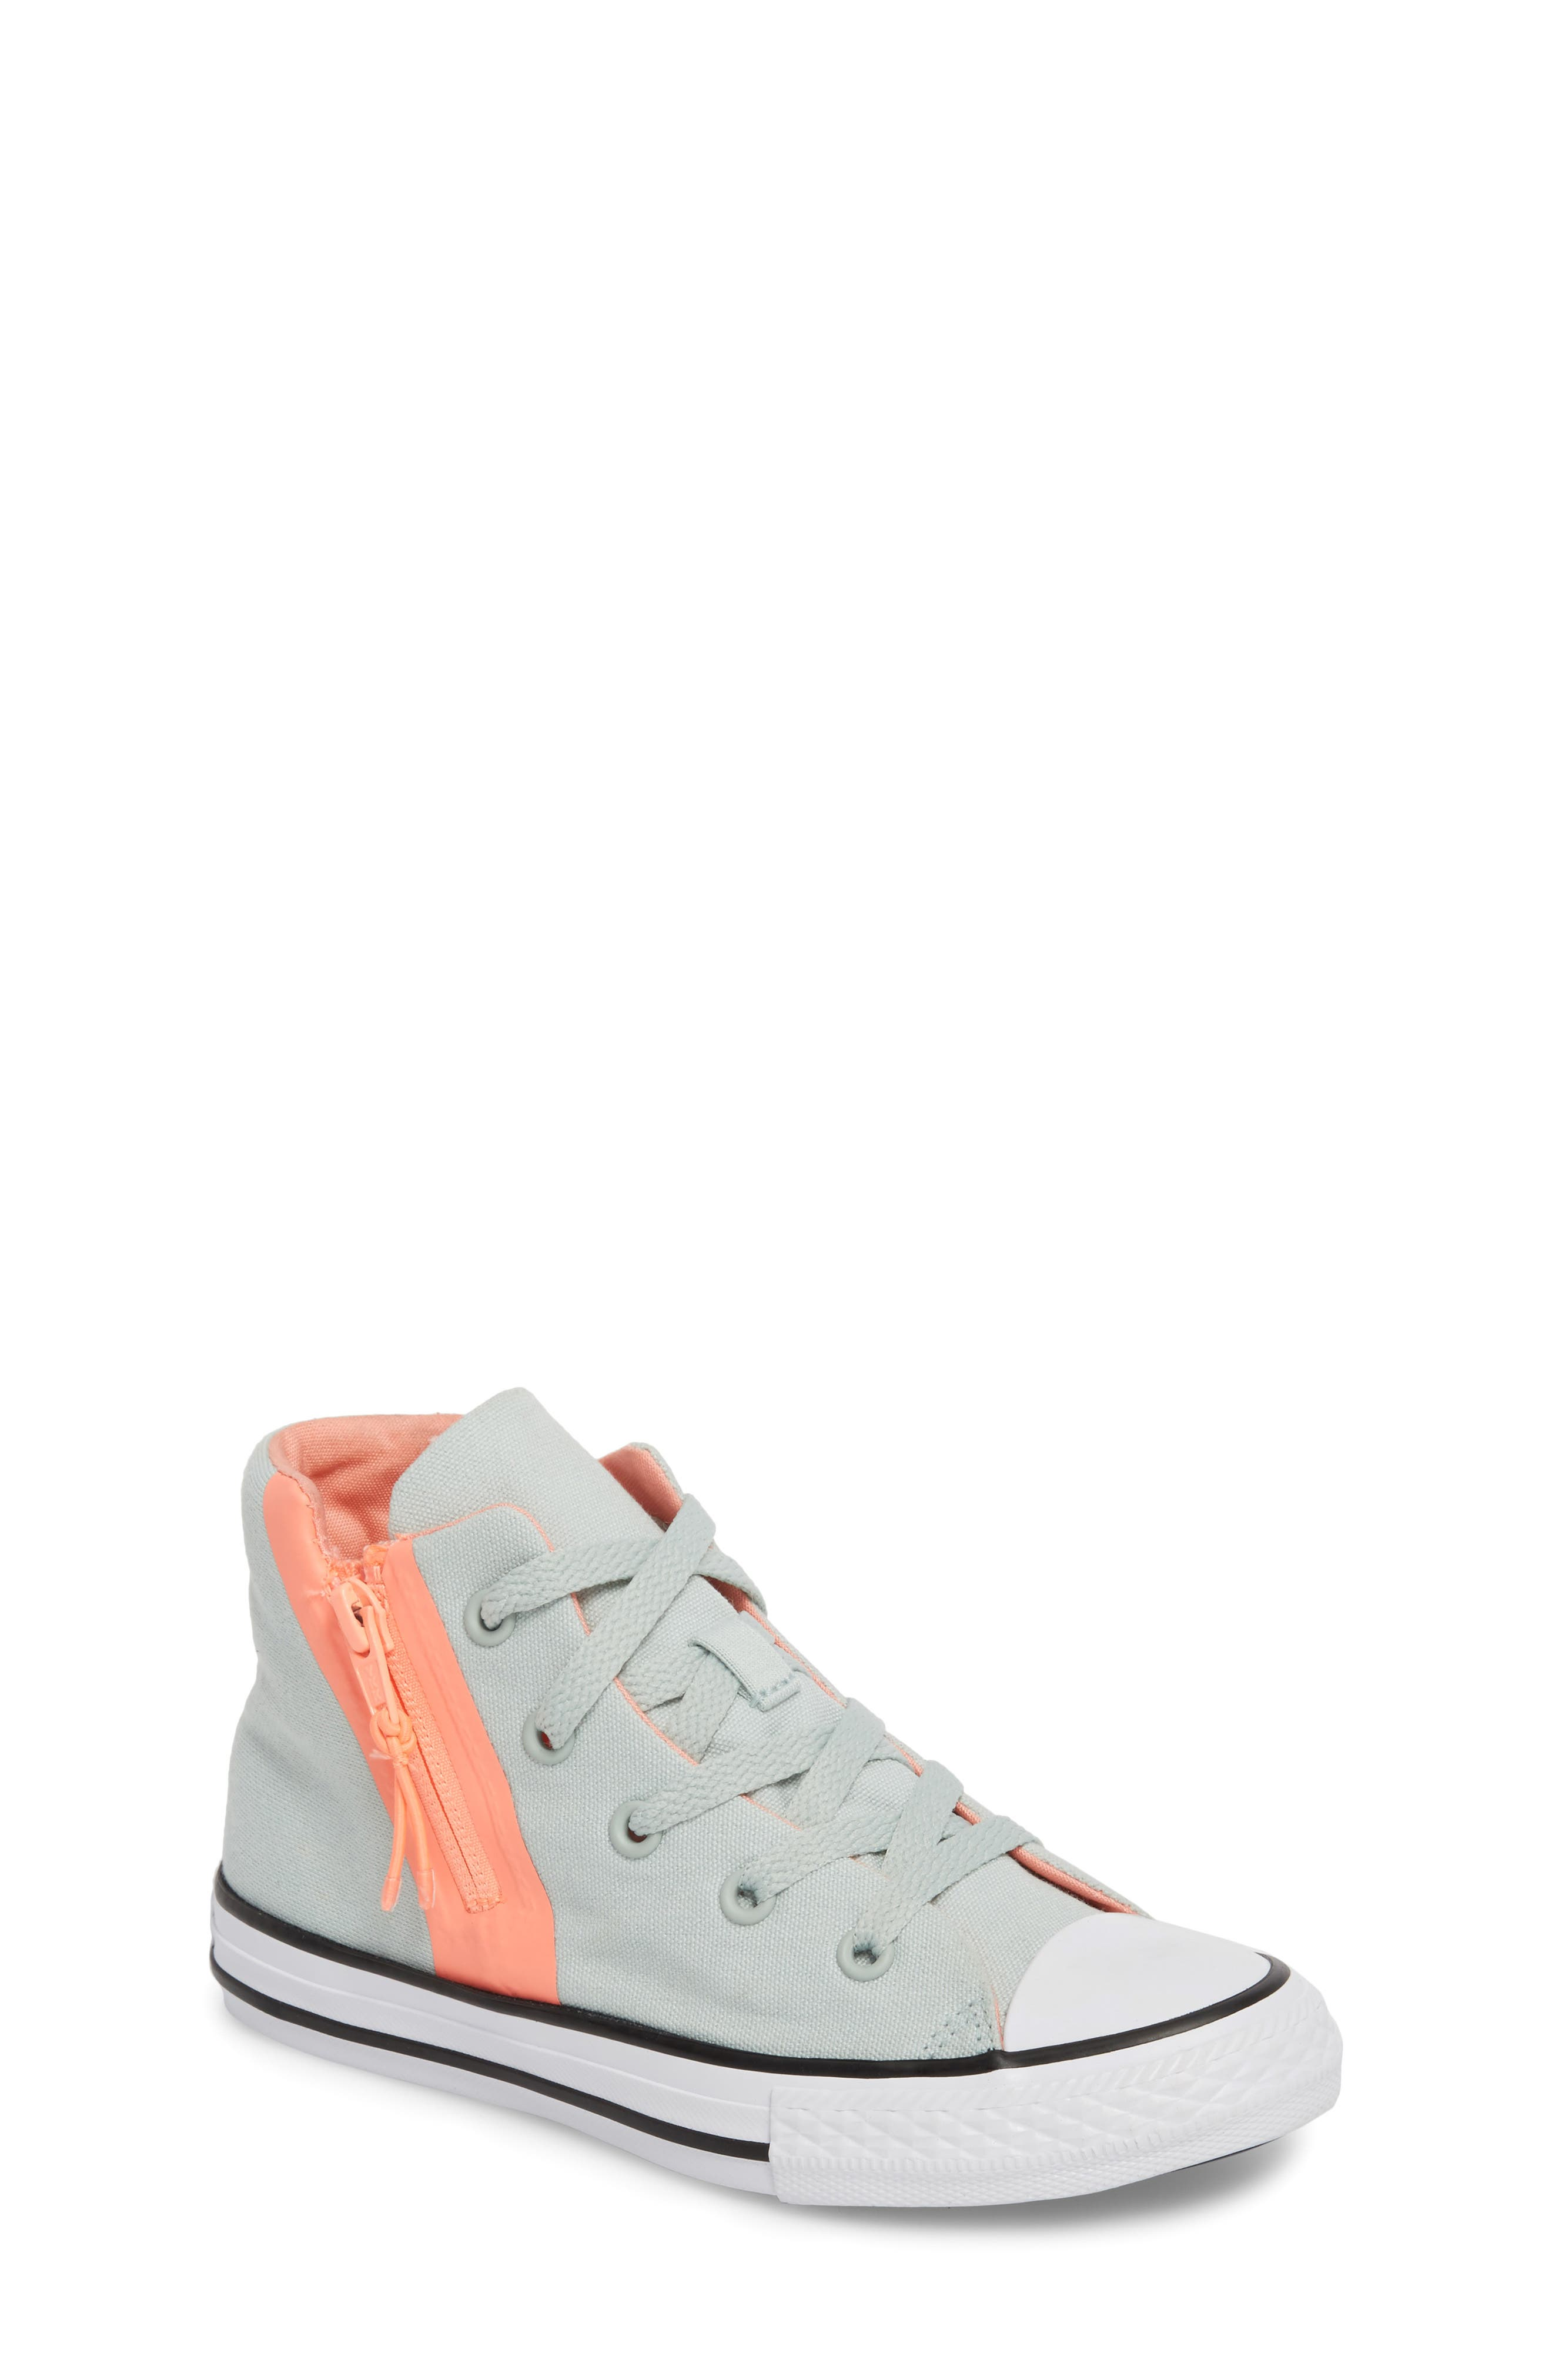 Chuck Taylor<sup>®</sup> All Star<sup>®</sup> Sport Zip High Top Sneaker,                             Main thumbnail 1, color,                             416